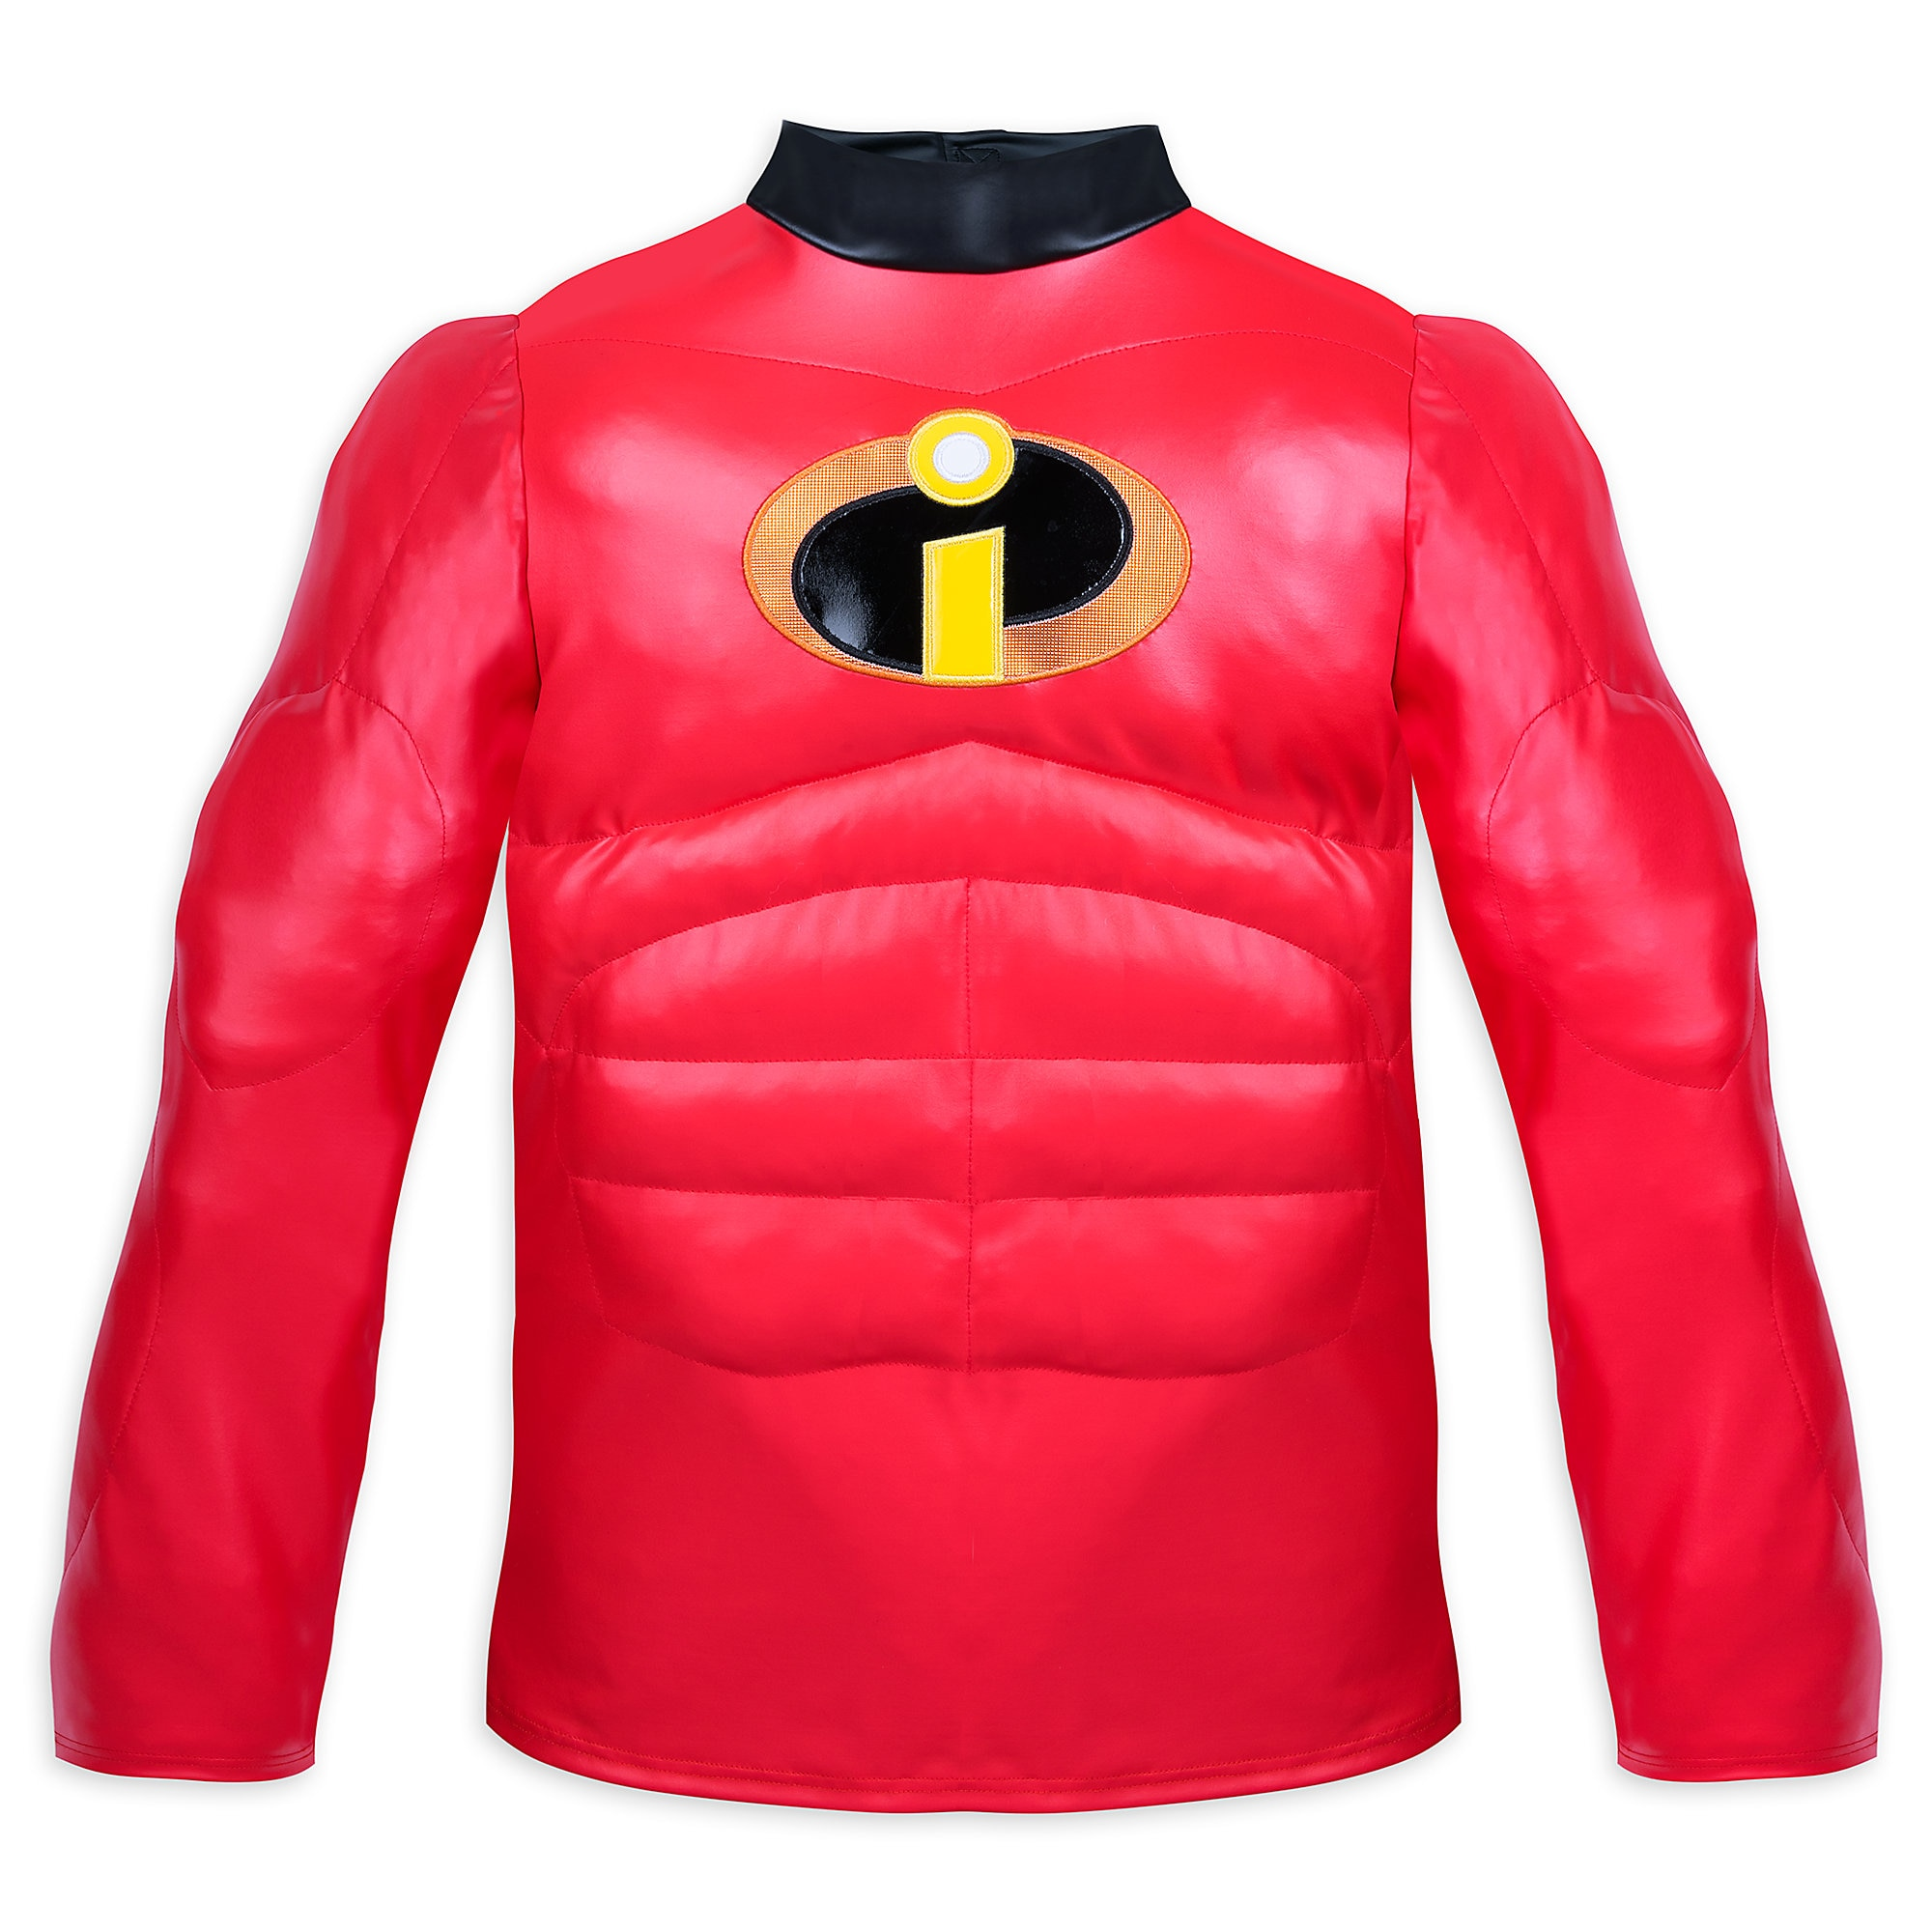 Thumbnail Image of Mr. Incredible Costume for Adults - Incredibles 2 # 4  sc 1 st  shopDisney & Mr. Incredible Costume for Adults - Incredibles 2   shopDisney